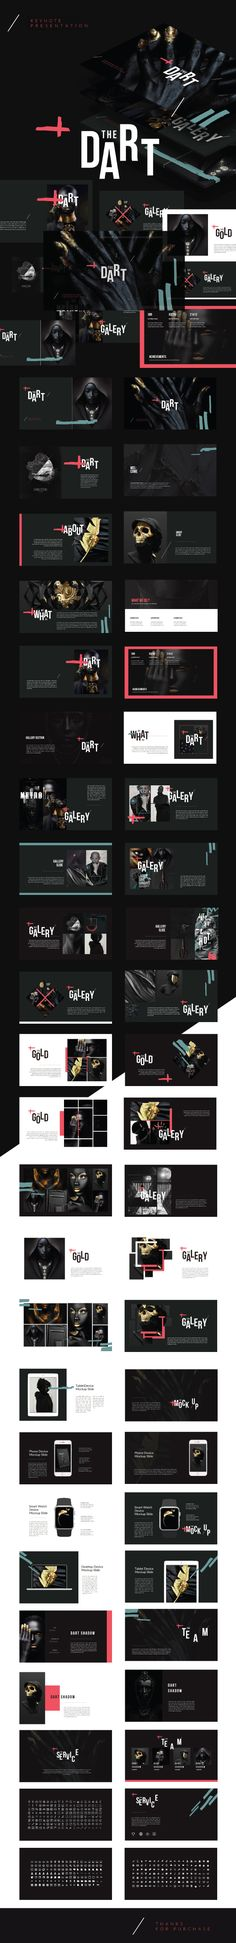 Dart - Creative Multipurpose Keynote Template